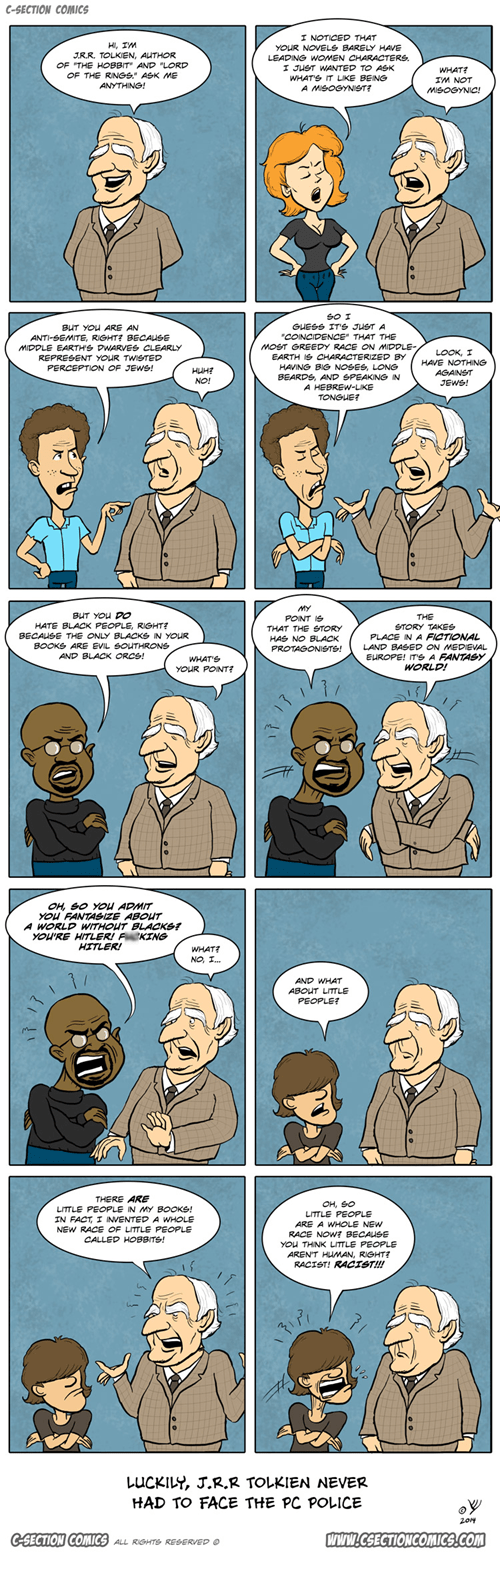 racism Lord of the Rings Misogyny tolkien Sad web comics